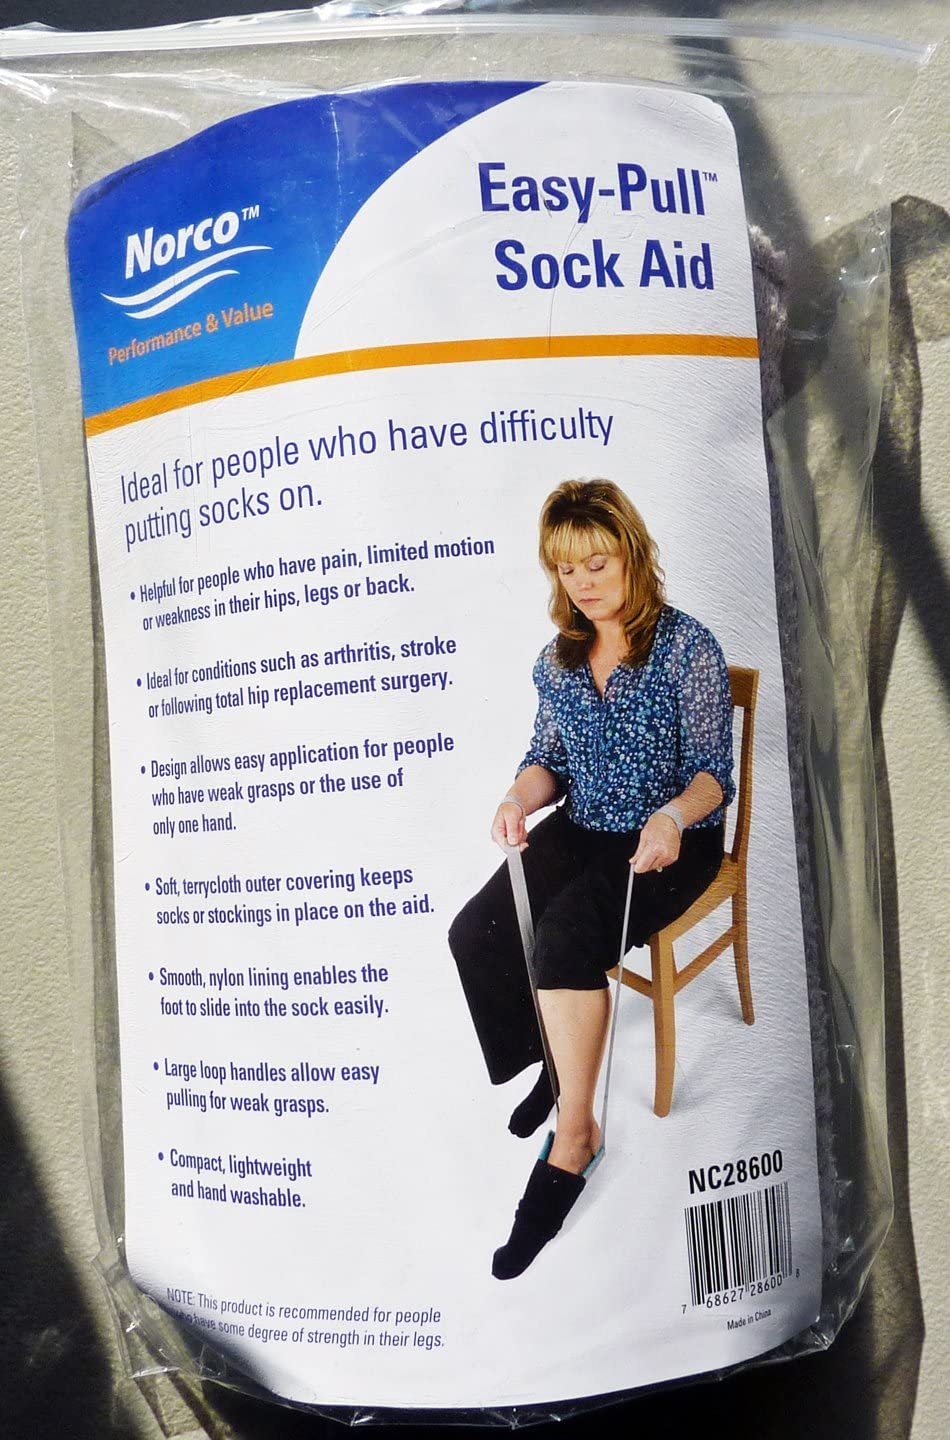 Norco Easy-Pull Sock Aid: Health & Personal Care